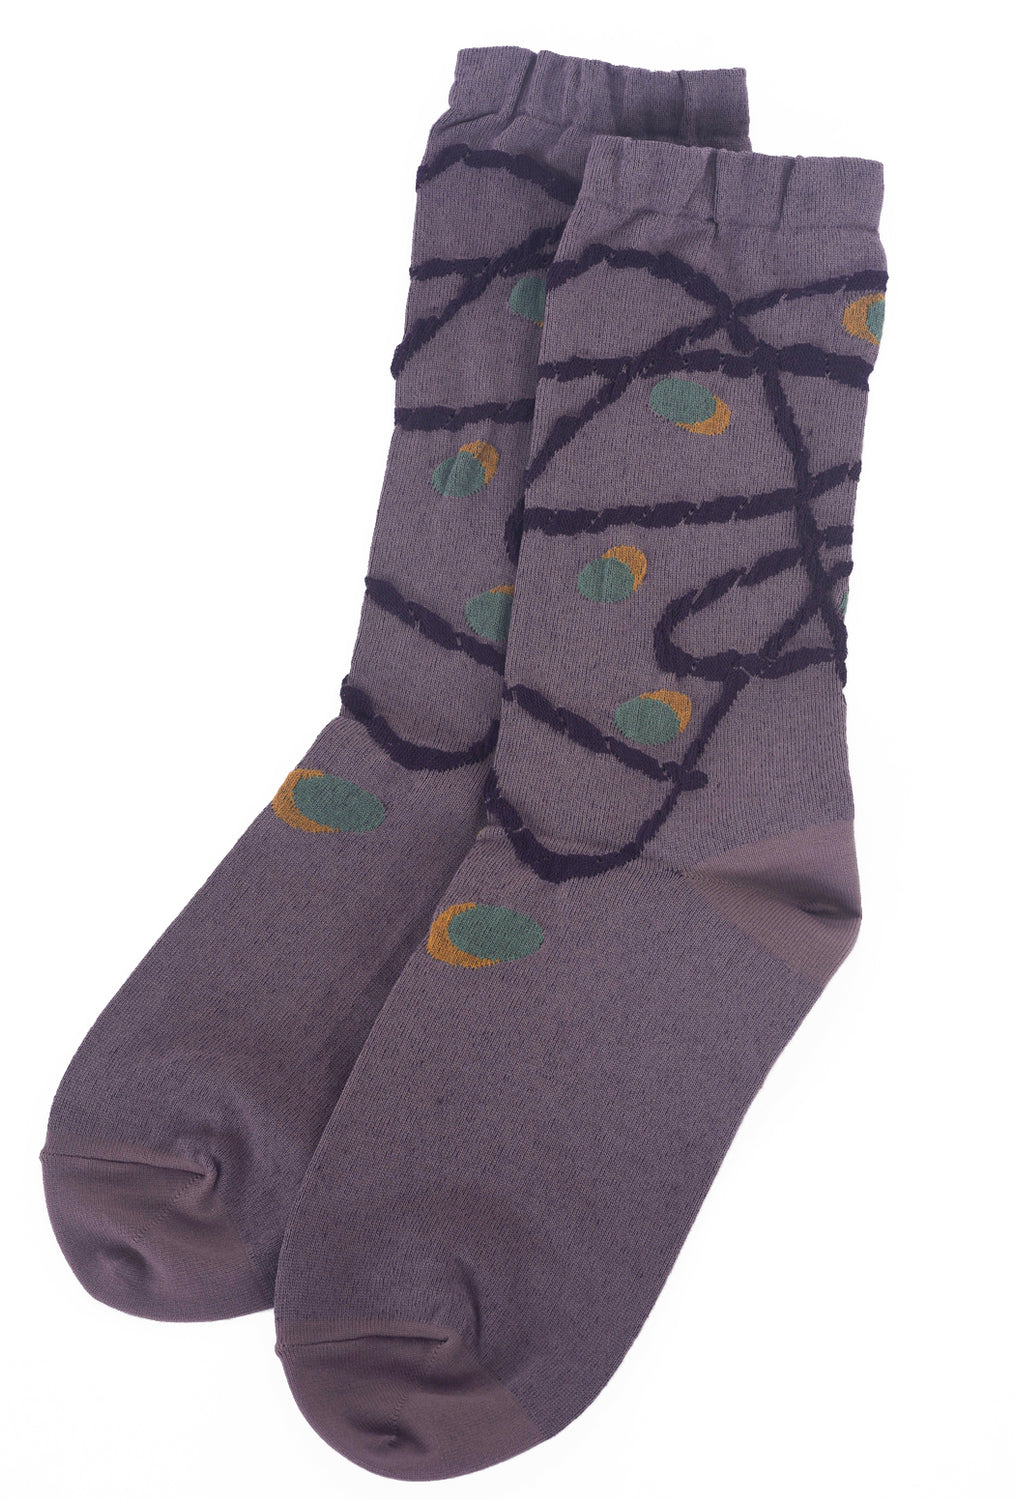 Ji-U Grapevine Detail Socks, Mauve One Size Mauve